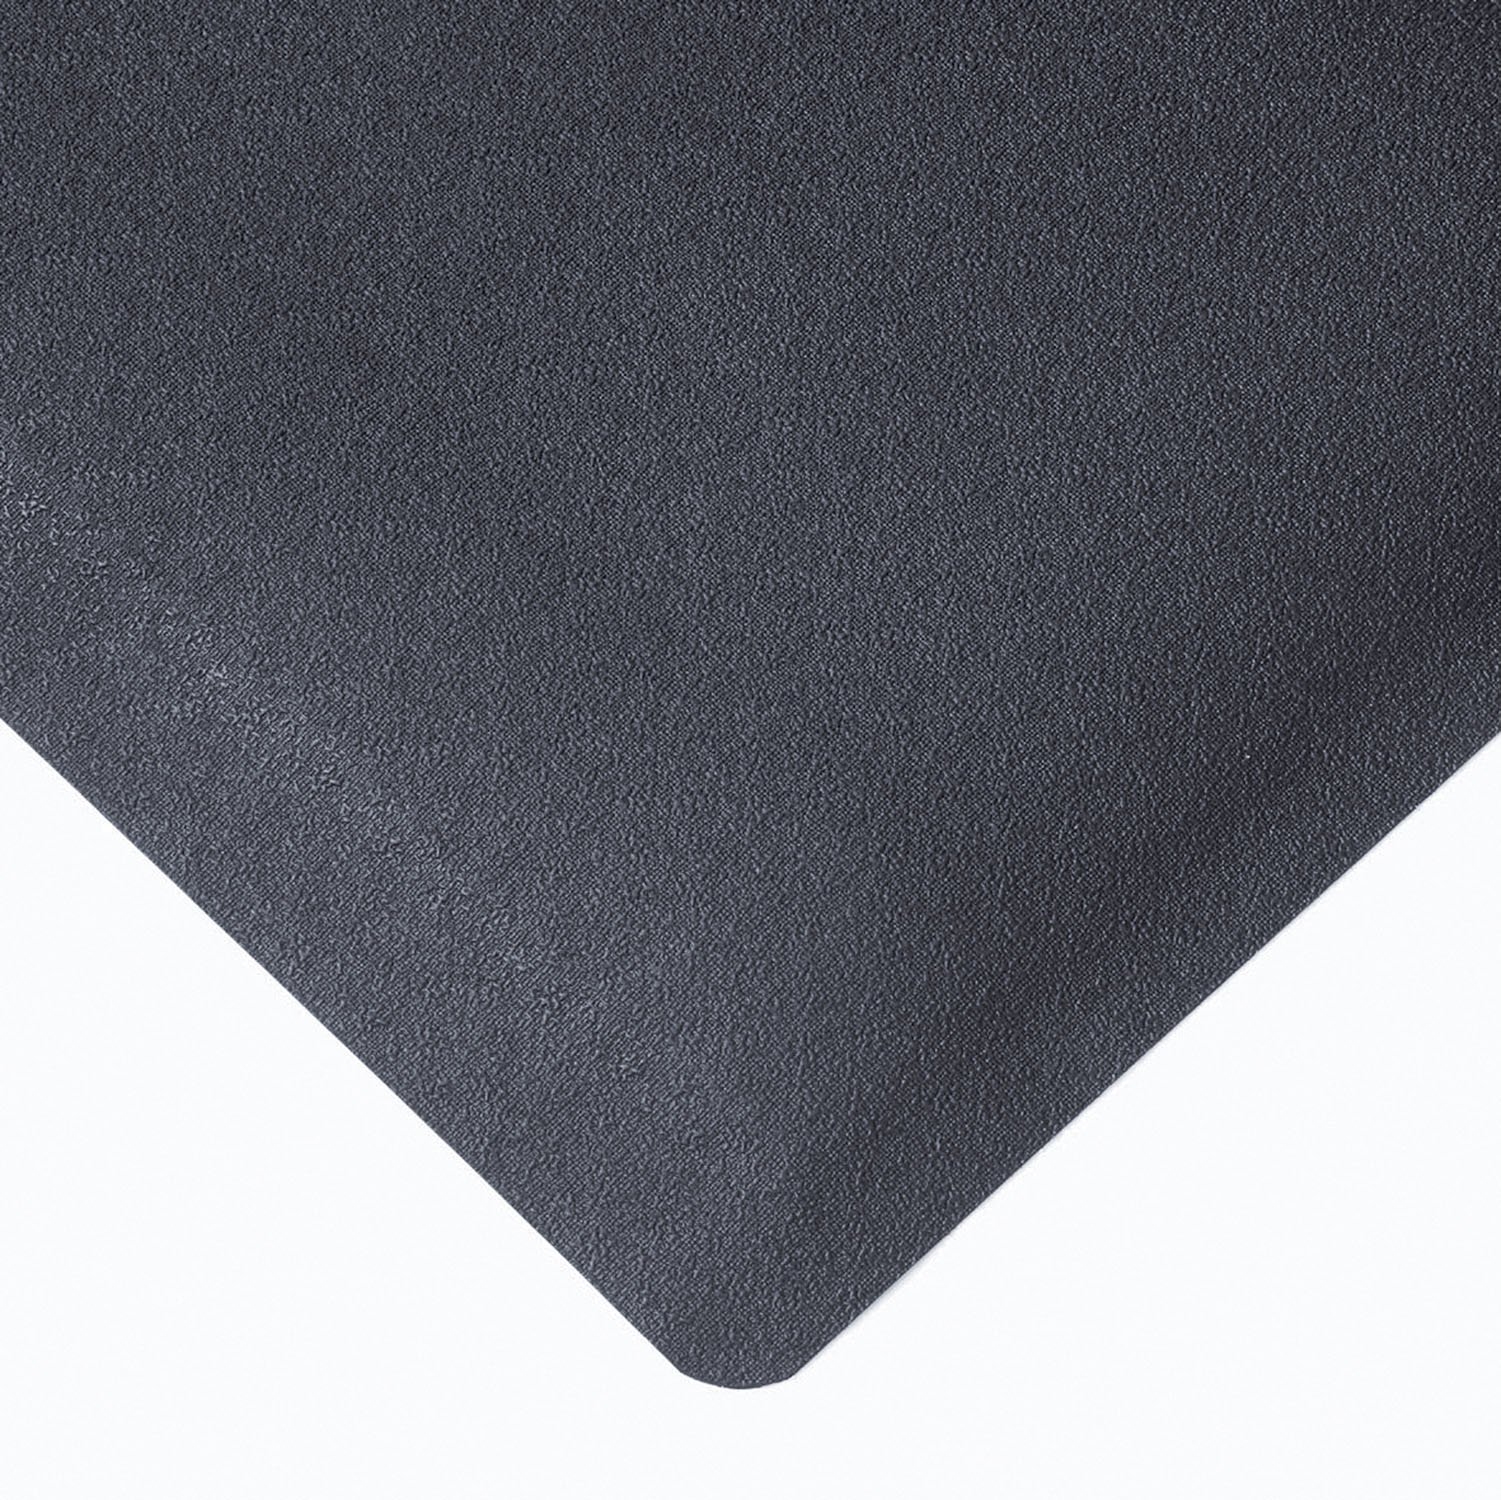 NoTrax Rubber 980 Pebble Trax Grande Anti-Fatigue Mat, for Dry Areas, 2' Width x 3' Length x 1'' Thickness, Black